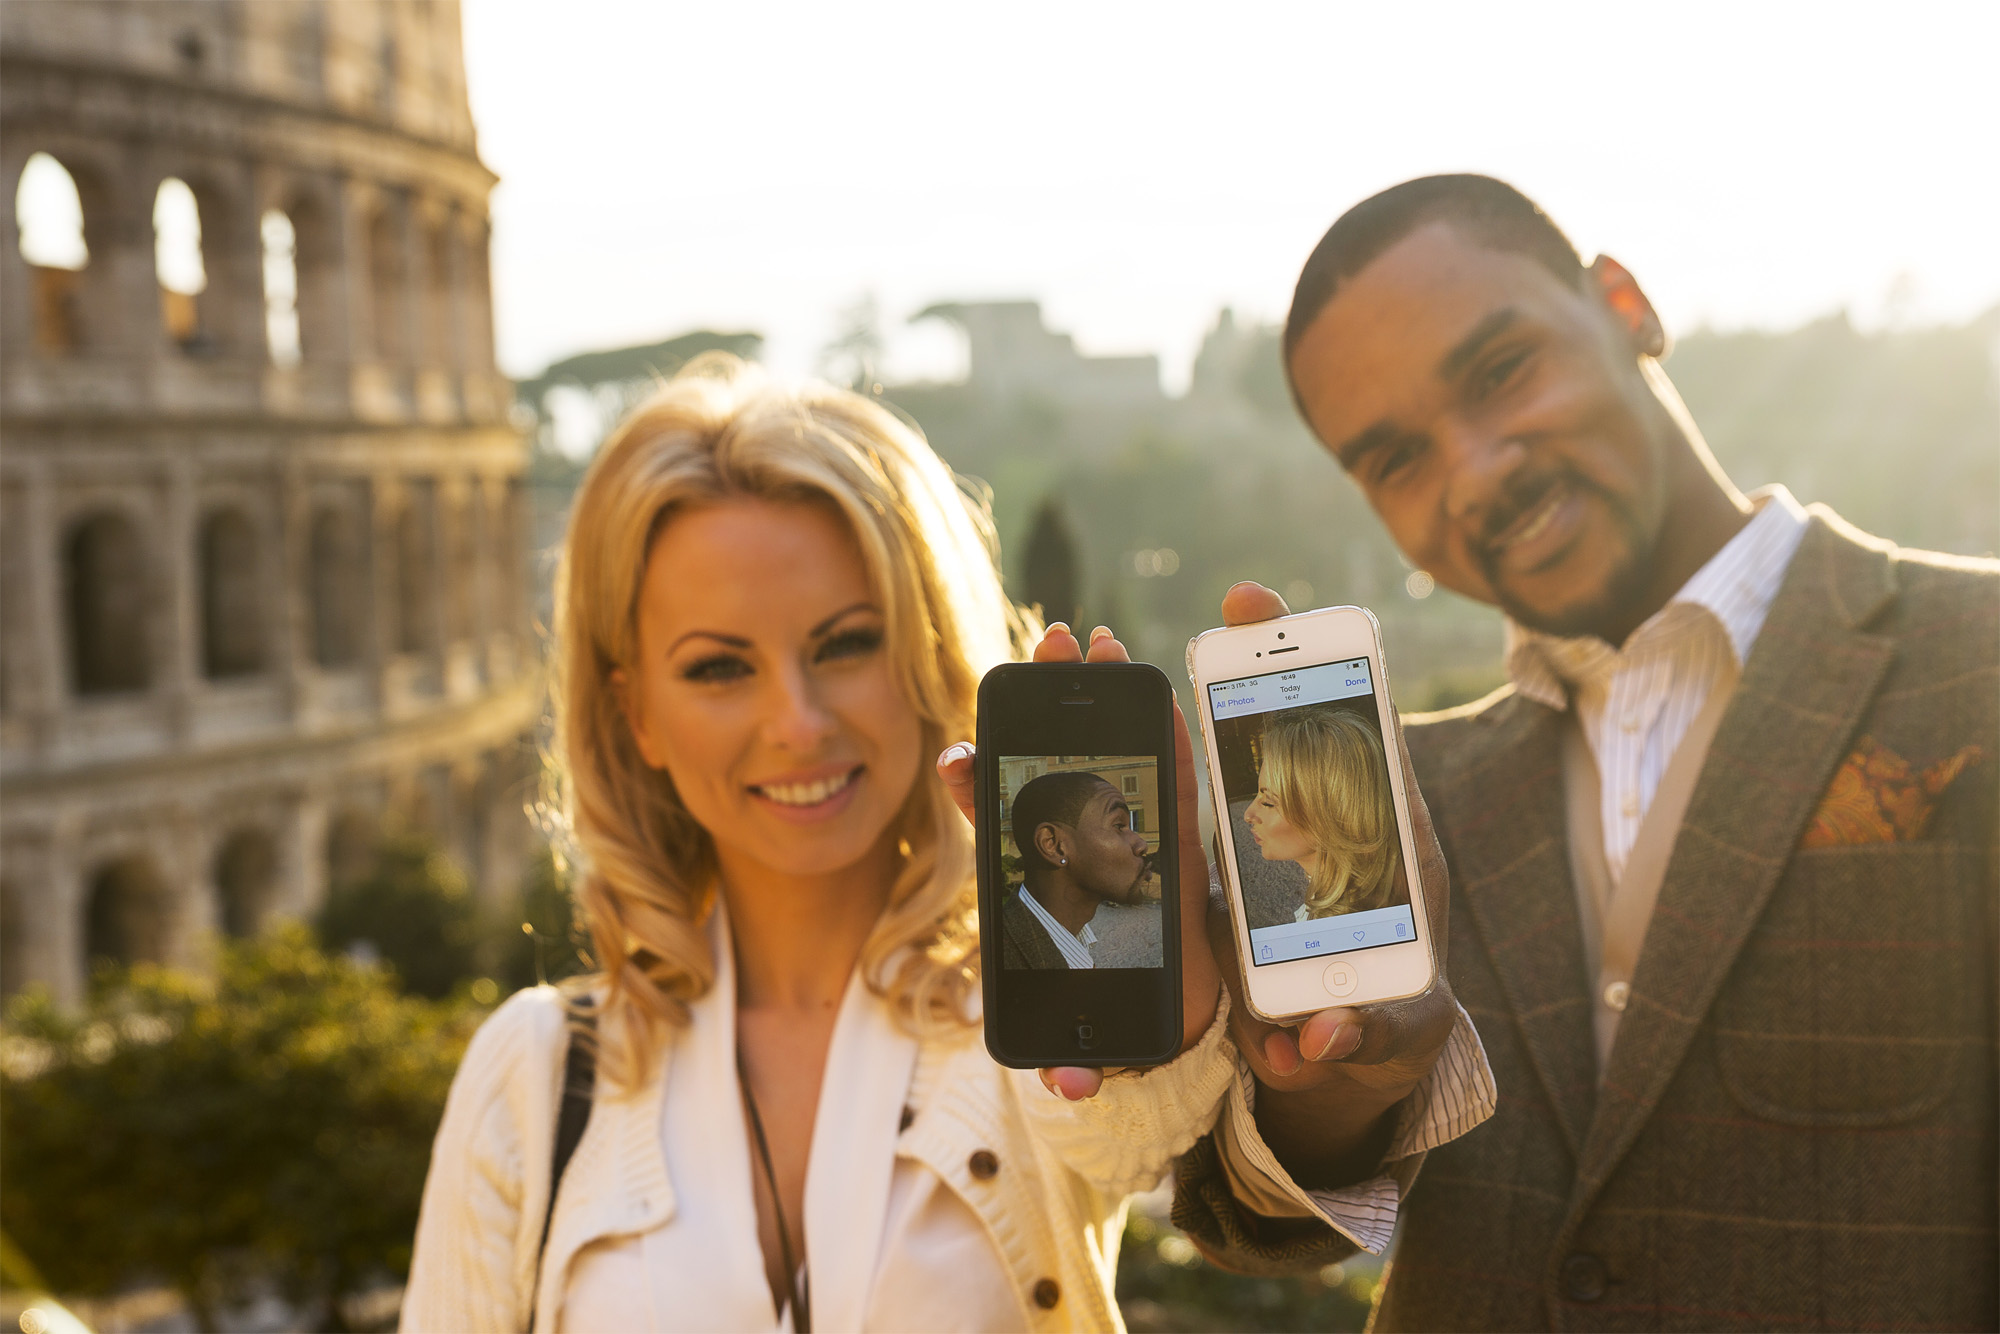 Fun Engagement photography ideas. Displaying each other's picture kissing on the mobile.